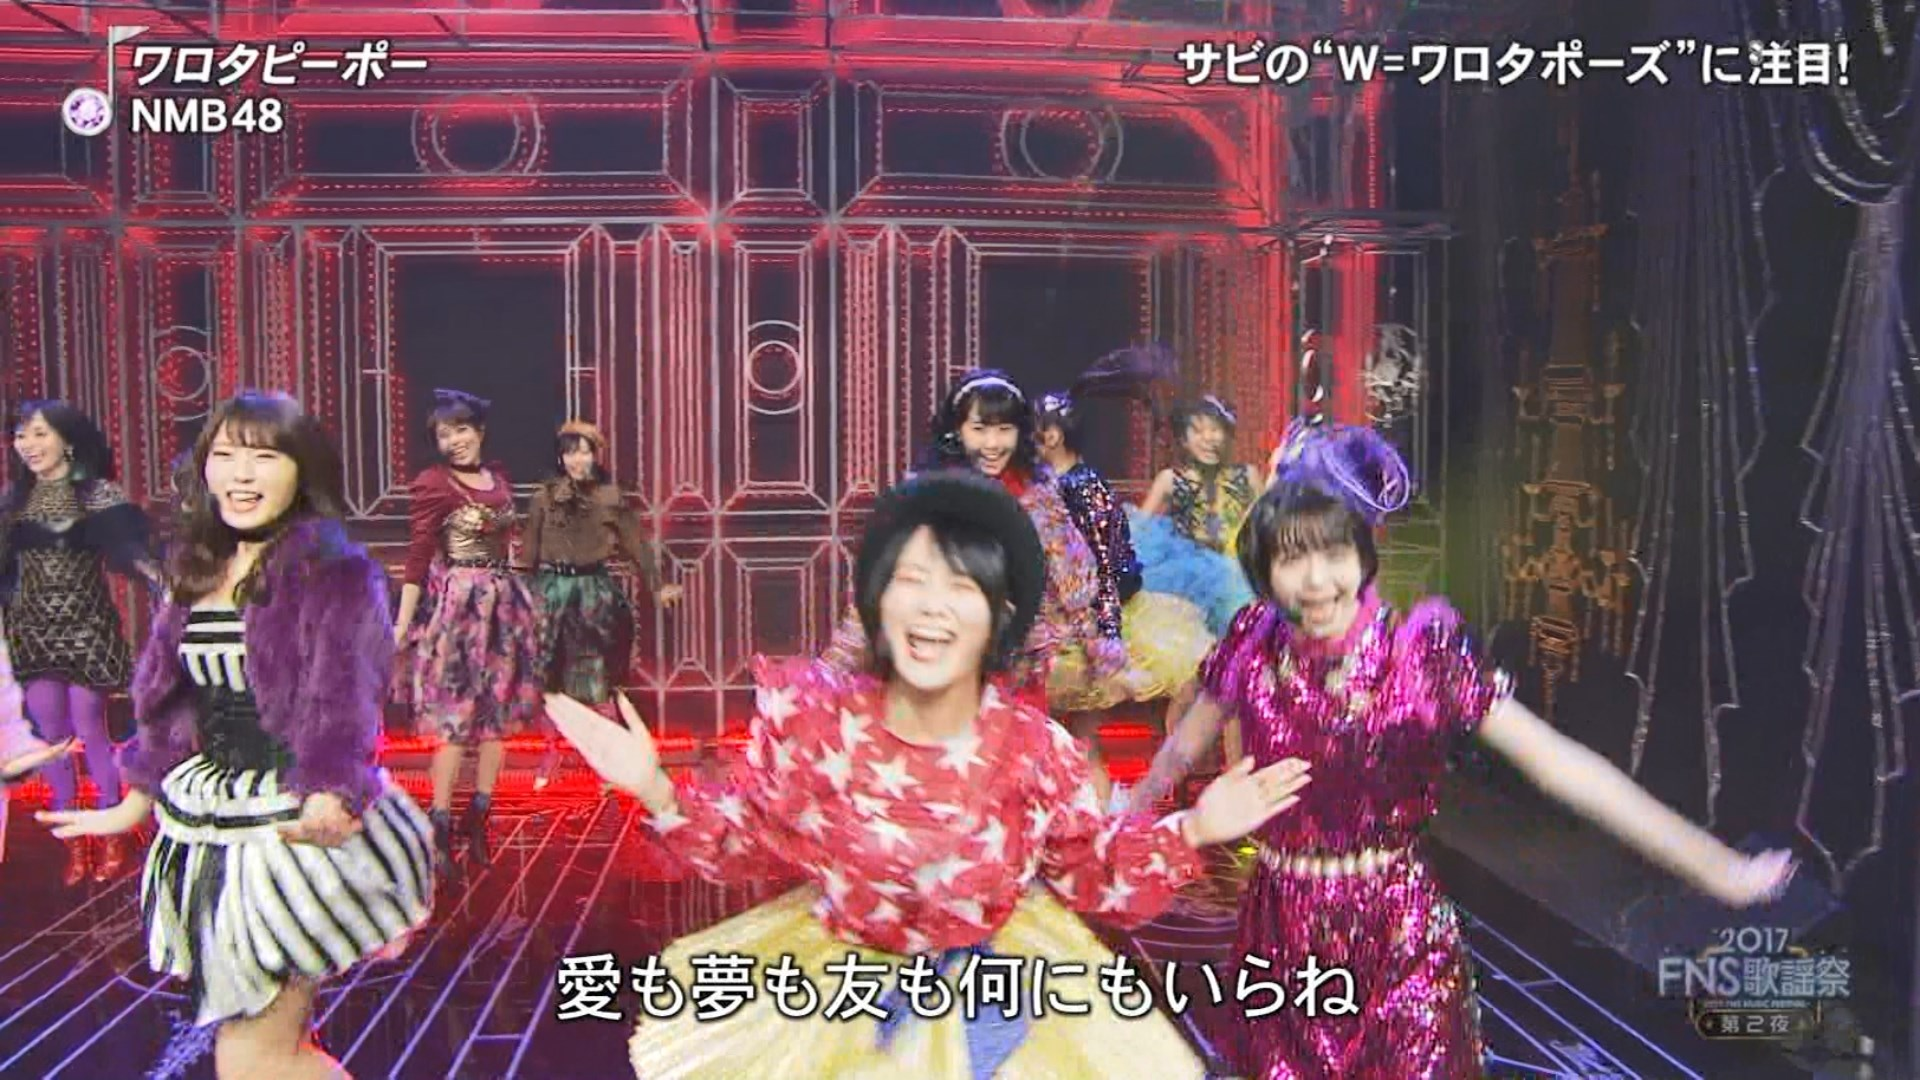 2017FNS歌謡祭第2夜・NMB48ワロタピーポーキャプ-077